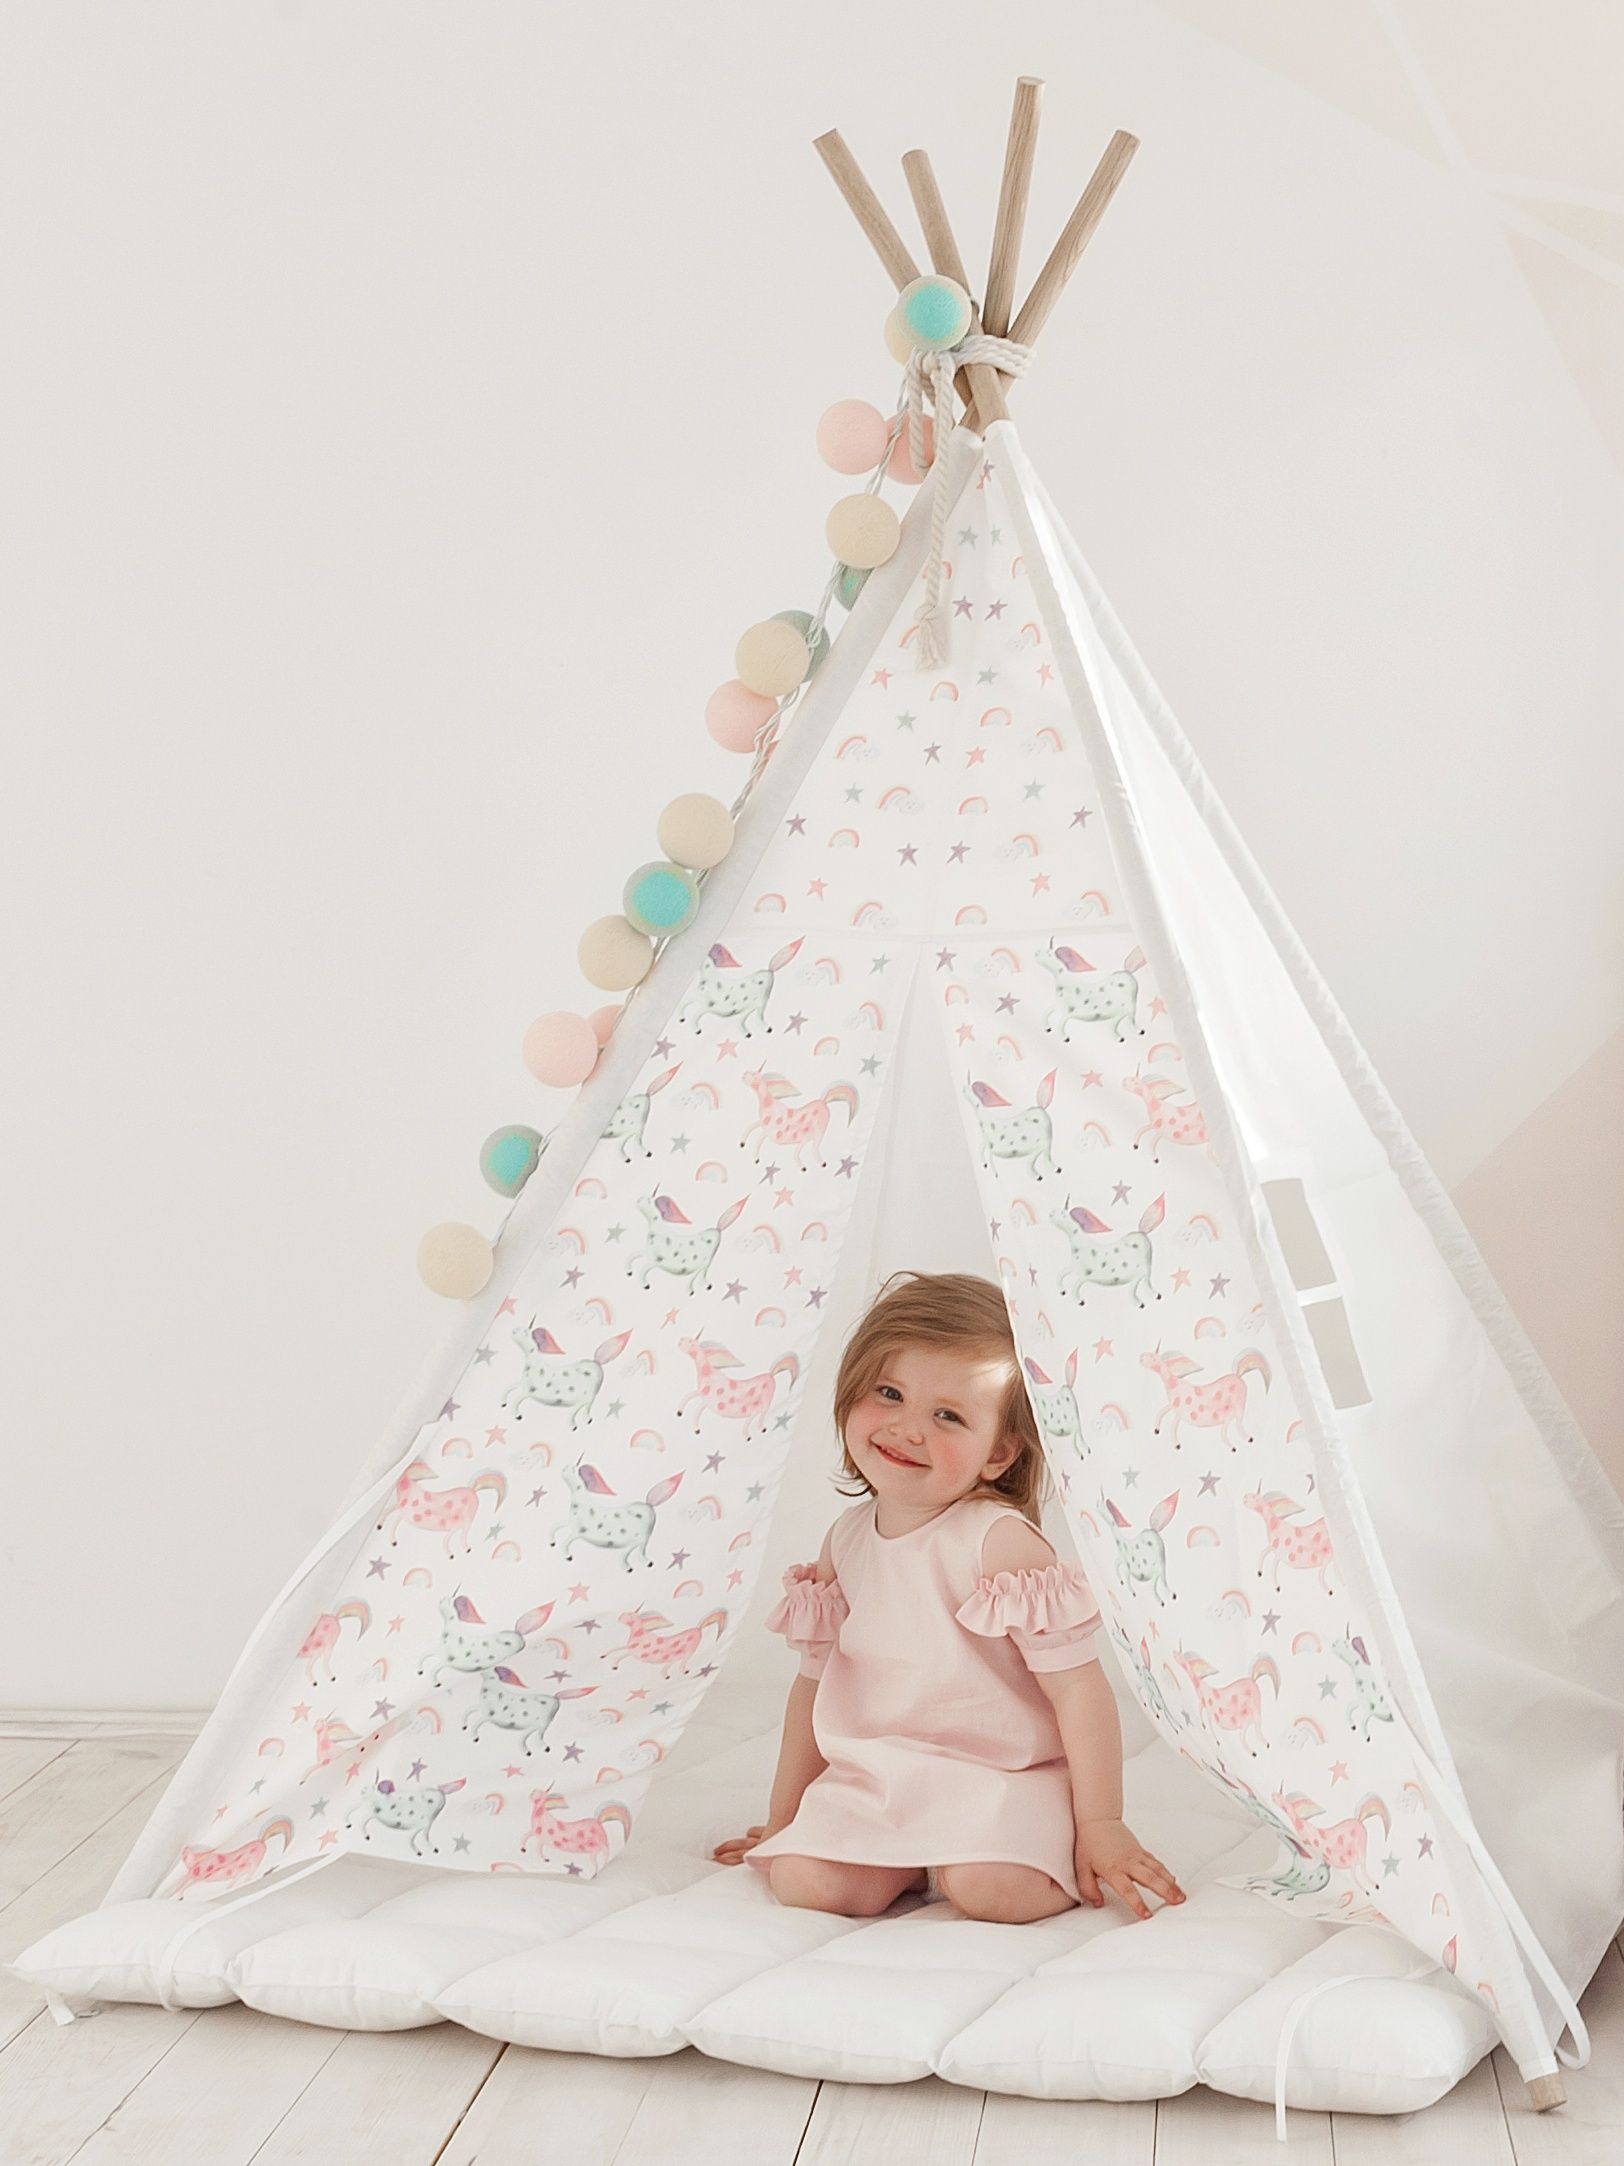 Kids Tepee with unicorns to buy on Etsy - HappySpacesWorkshop -Tipi with  poles 71332ad77d66c